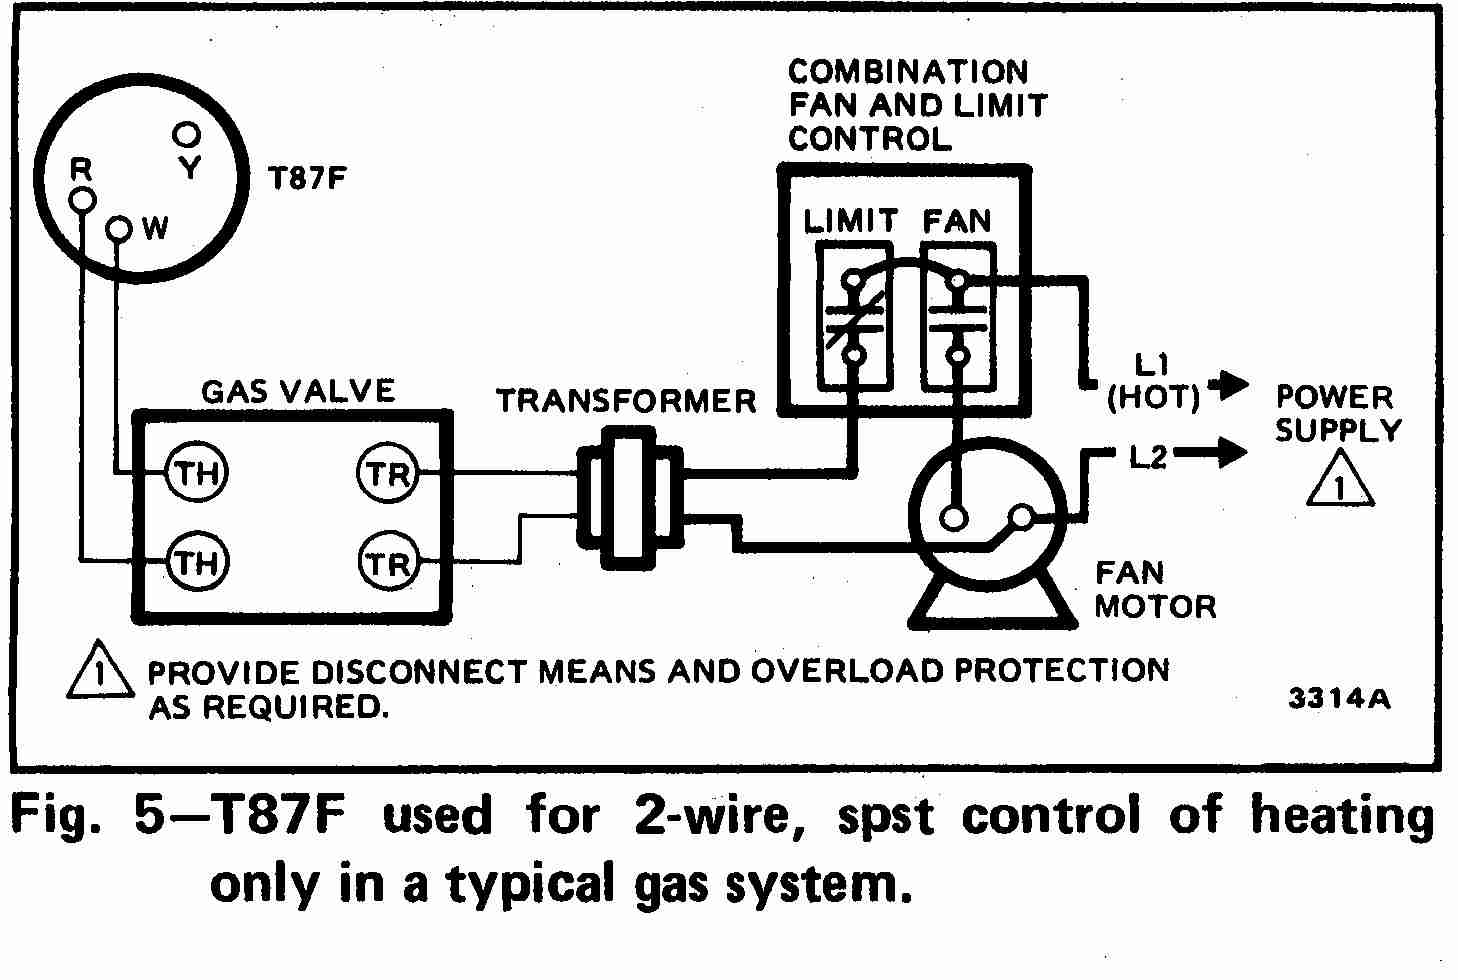 TT_T87F_0002_2Wg_DJF room thermostat wiring diagrams for hvac systems modine gas heater wiring diagram at gsmportal.co